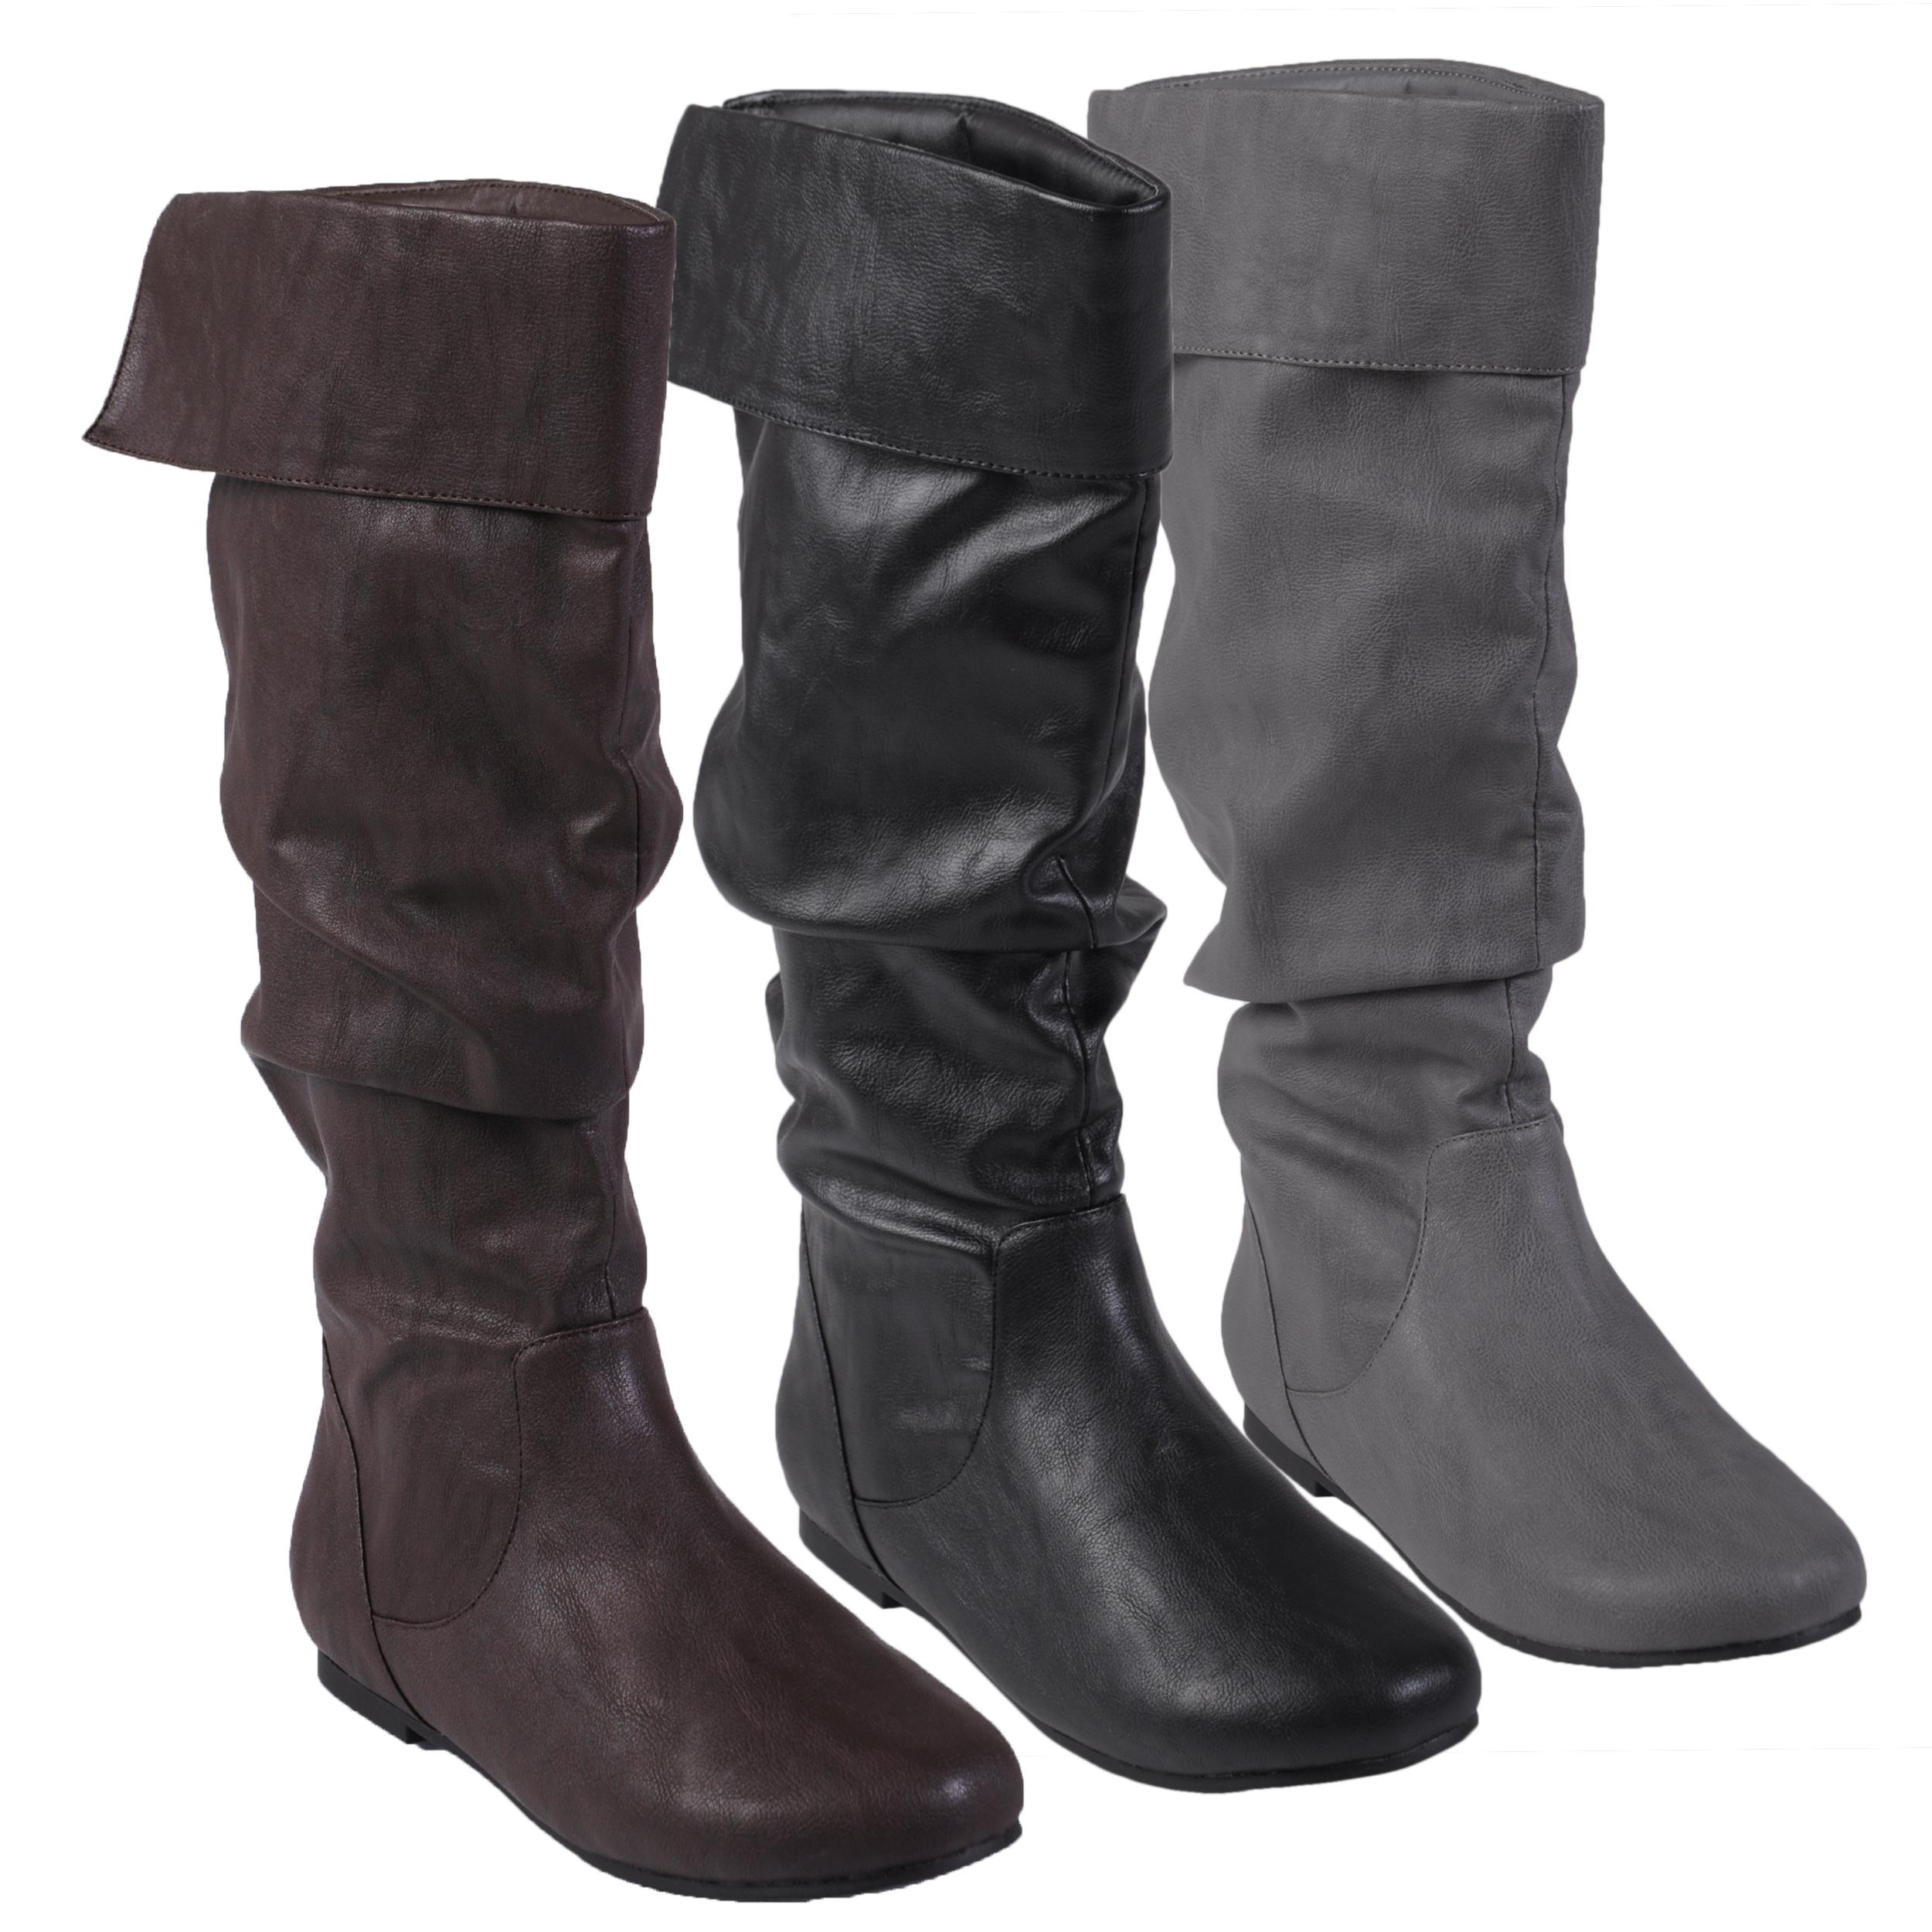 Journee Collection Women's 'Alli-24' Faux Leather Slouchy Boot